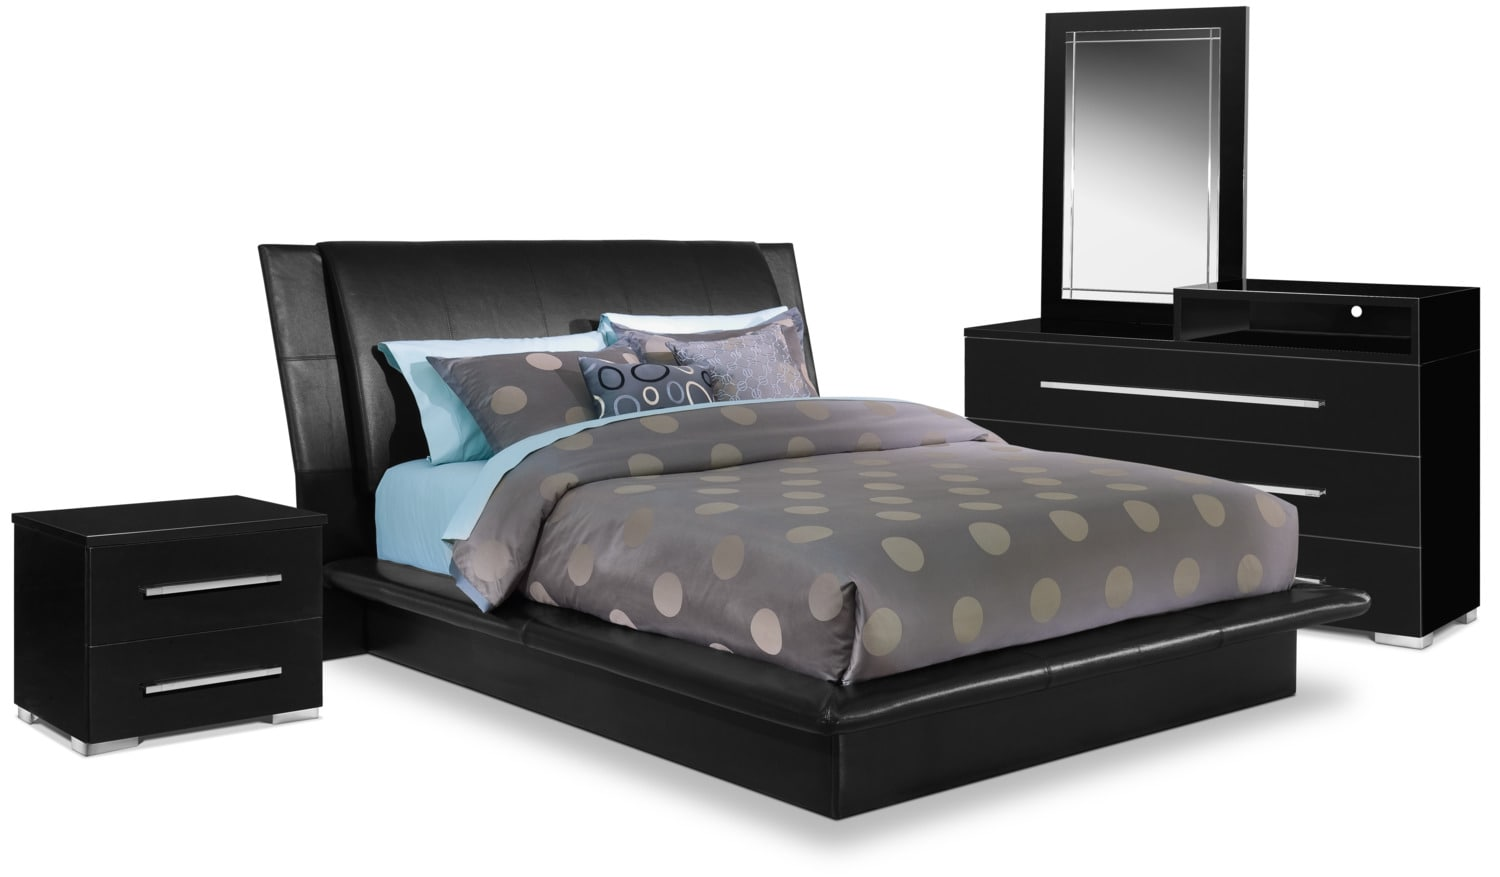 Dimora 6 Piece Queen Upholstered Bedroom Set With Media Dresser   Black